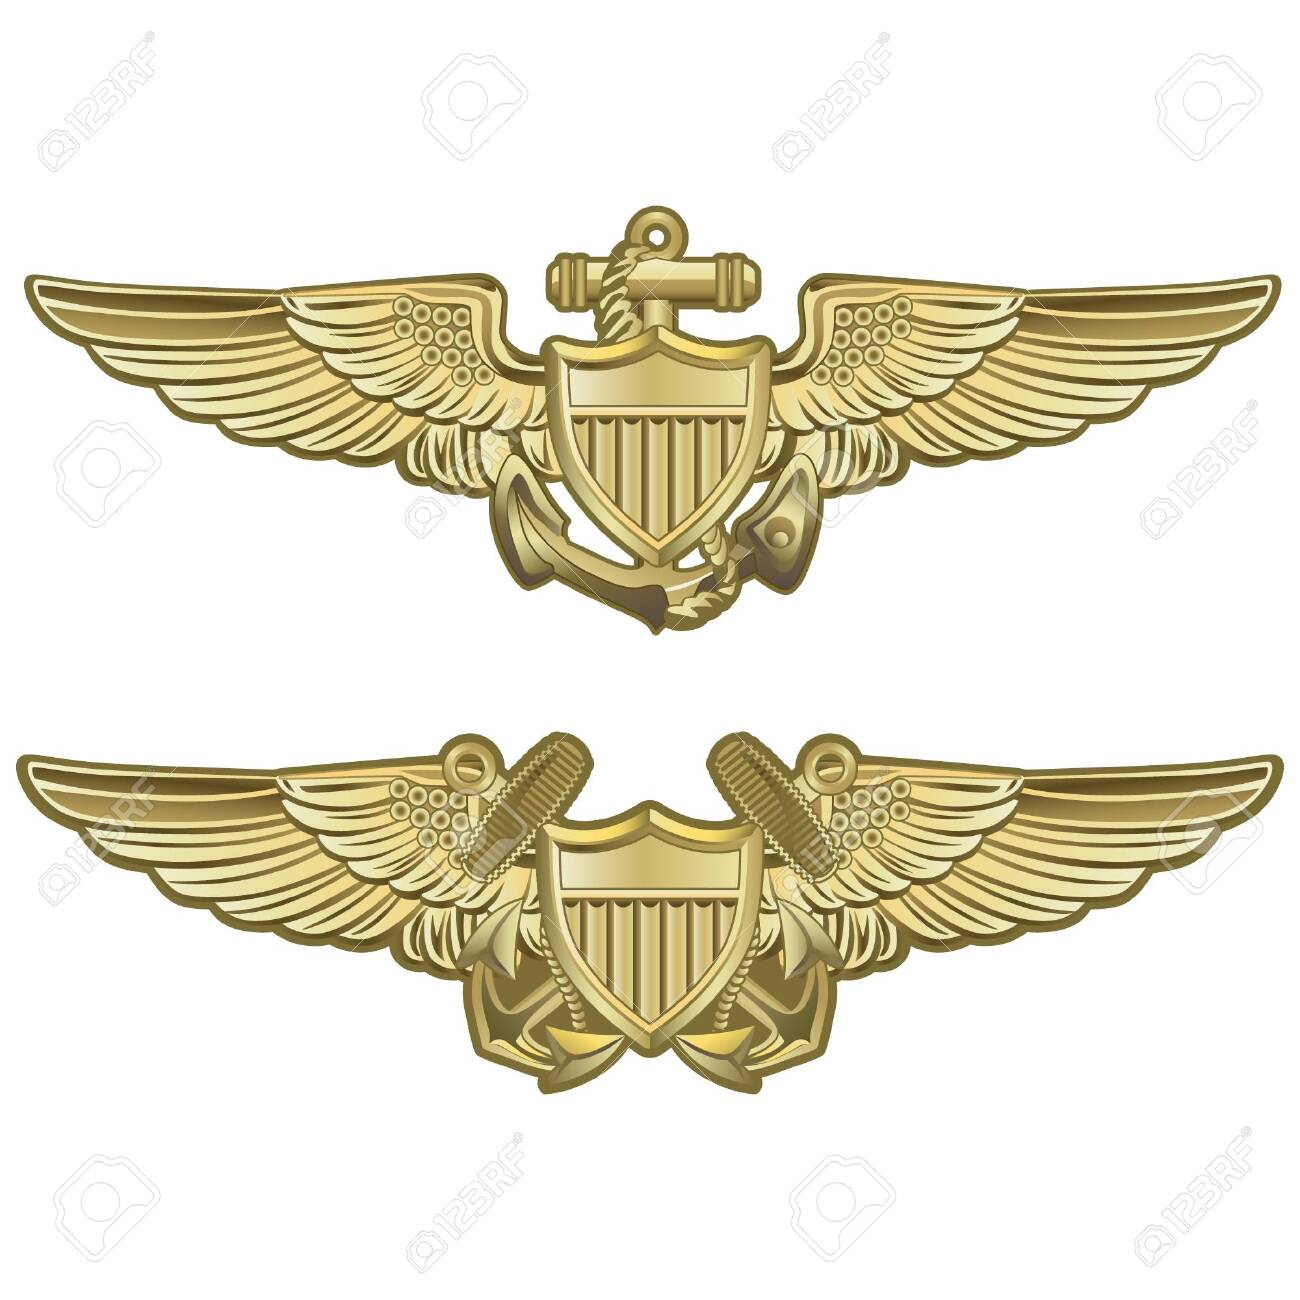 naval aviator wings royalty free cliparts, vectors, and stock illustration.  image 147312873.  123rf